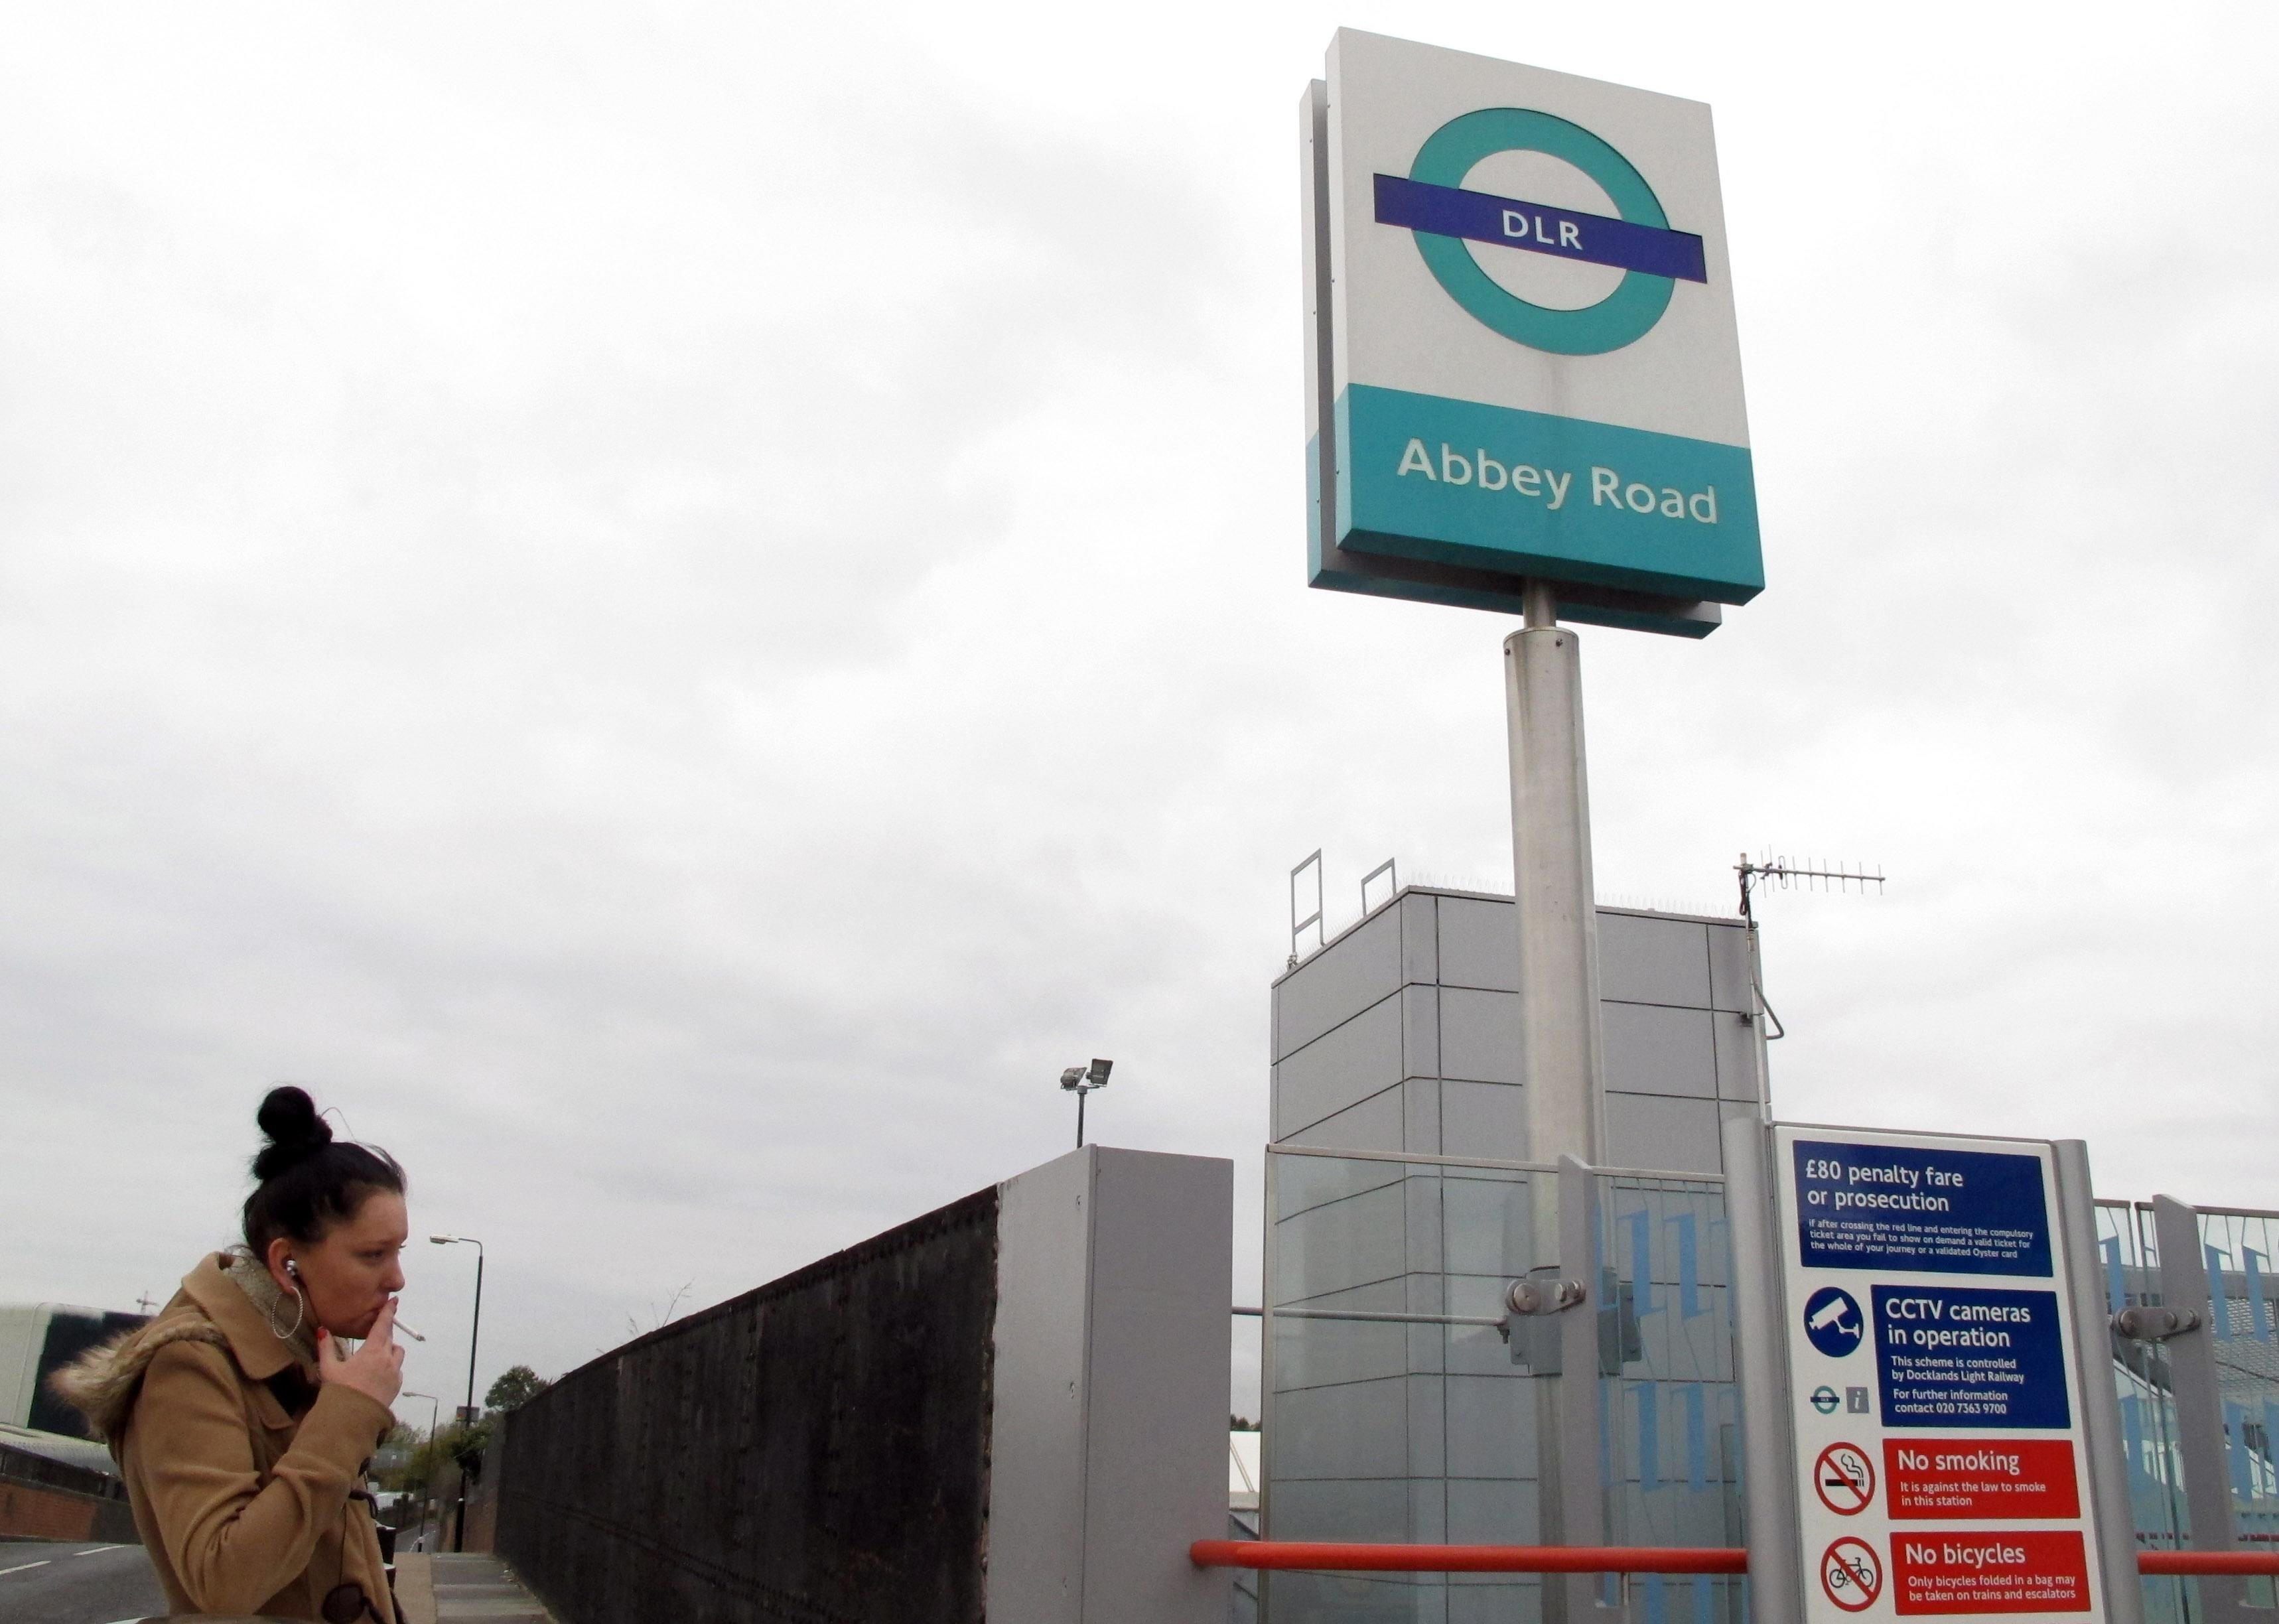 """The sign for east London's Abbey Road Station is seen against the backdrop of apartment buildings on Friday, Nov. 10, 2012. Abbey Road Station is more than nine miles from the striped crosswalk made famous by the Beatles album """"Abbey Road,"""" but this drab transit hub keeps drawing confused fans of the Fab Four into unwanted jaunts through a gritty, industrial area of east London. (AP Photo/Raphael Satter)"""